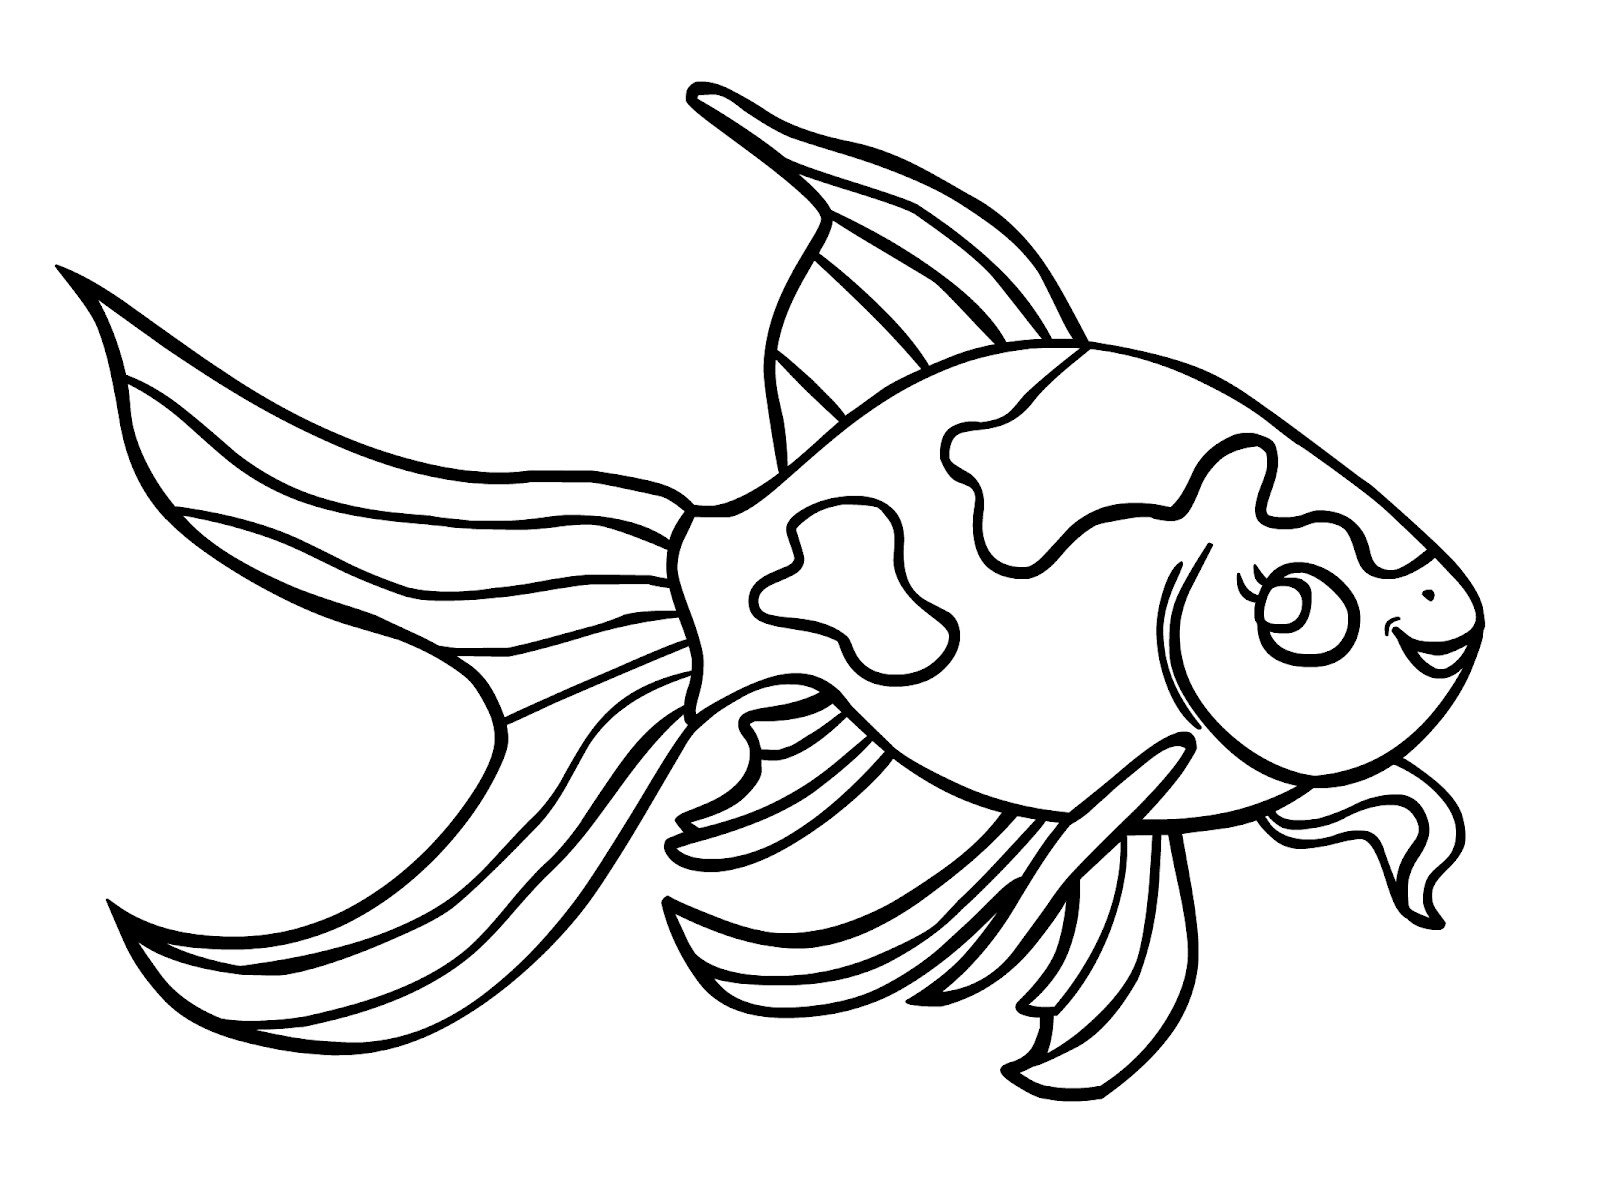 Fish Coloring Pages Free Printable | Coloring Pages - Free Printable Fish Coloring Pages